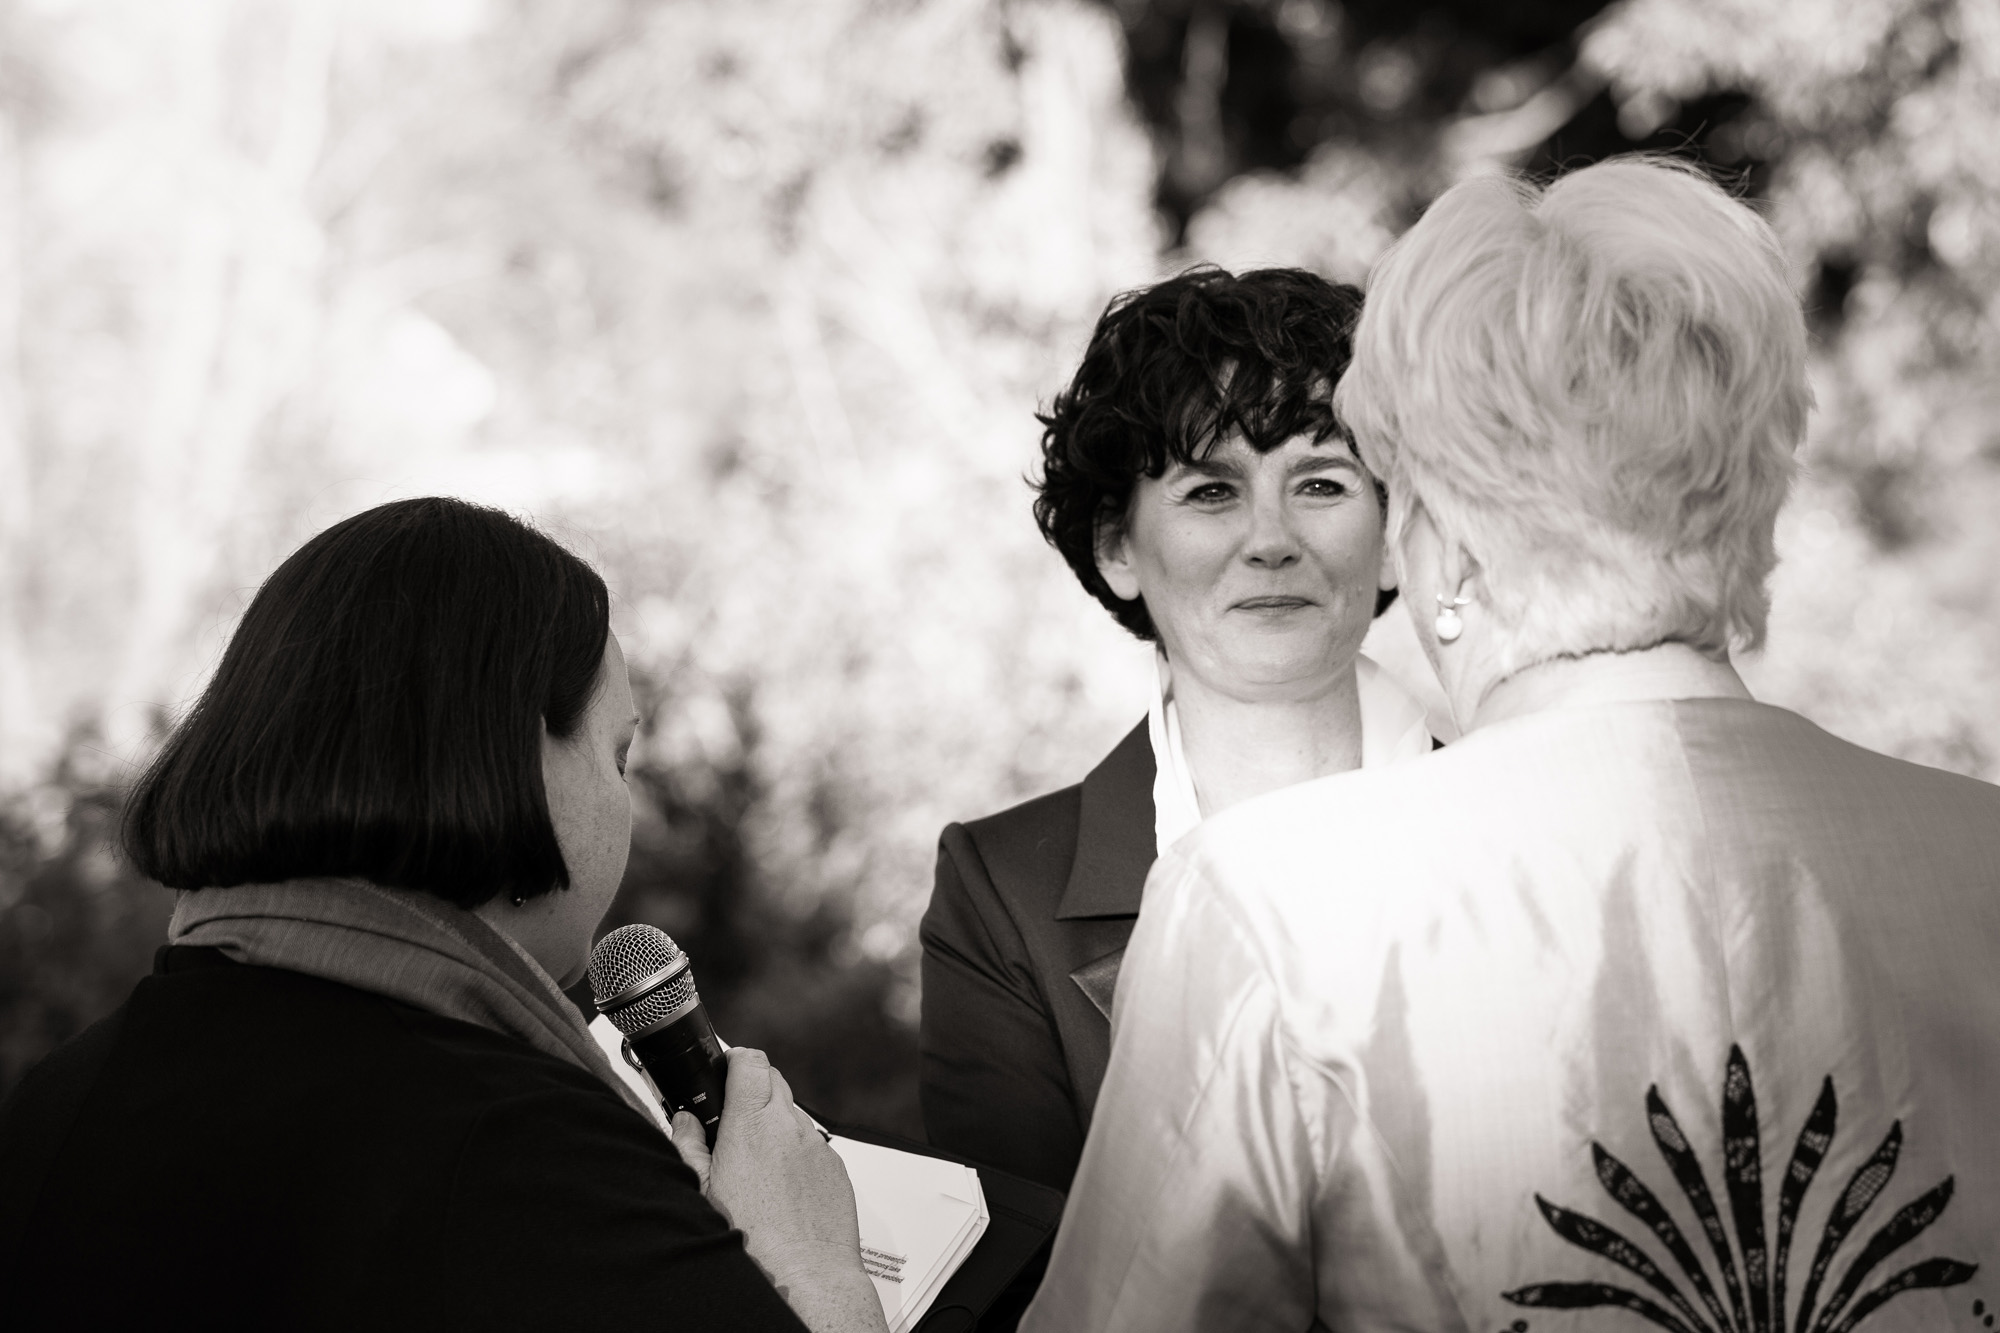 brisbane_wedding_photography_candid.jpg